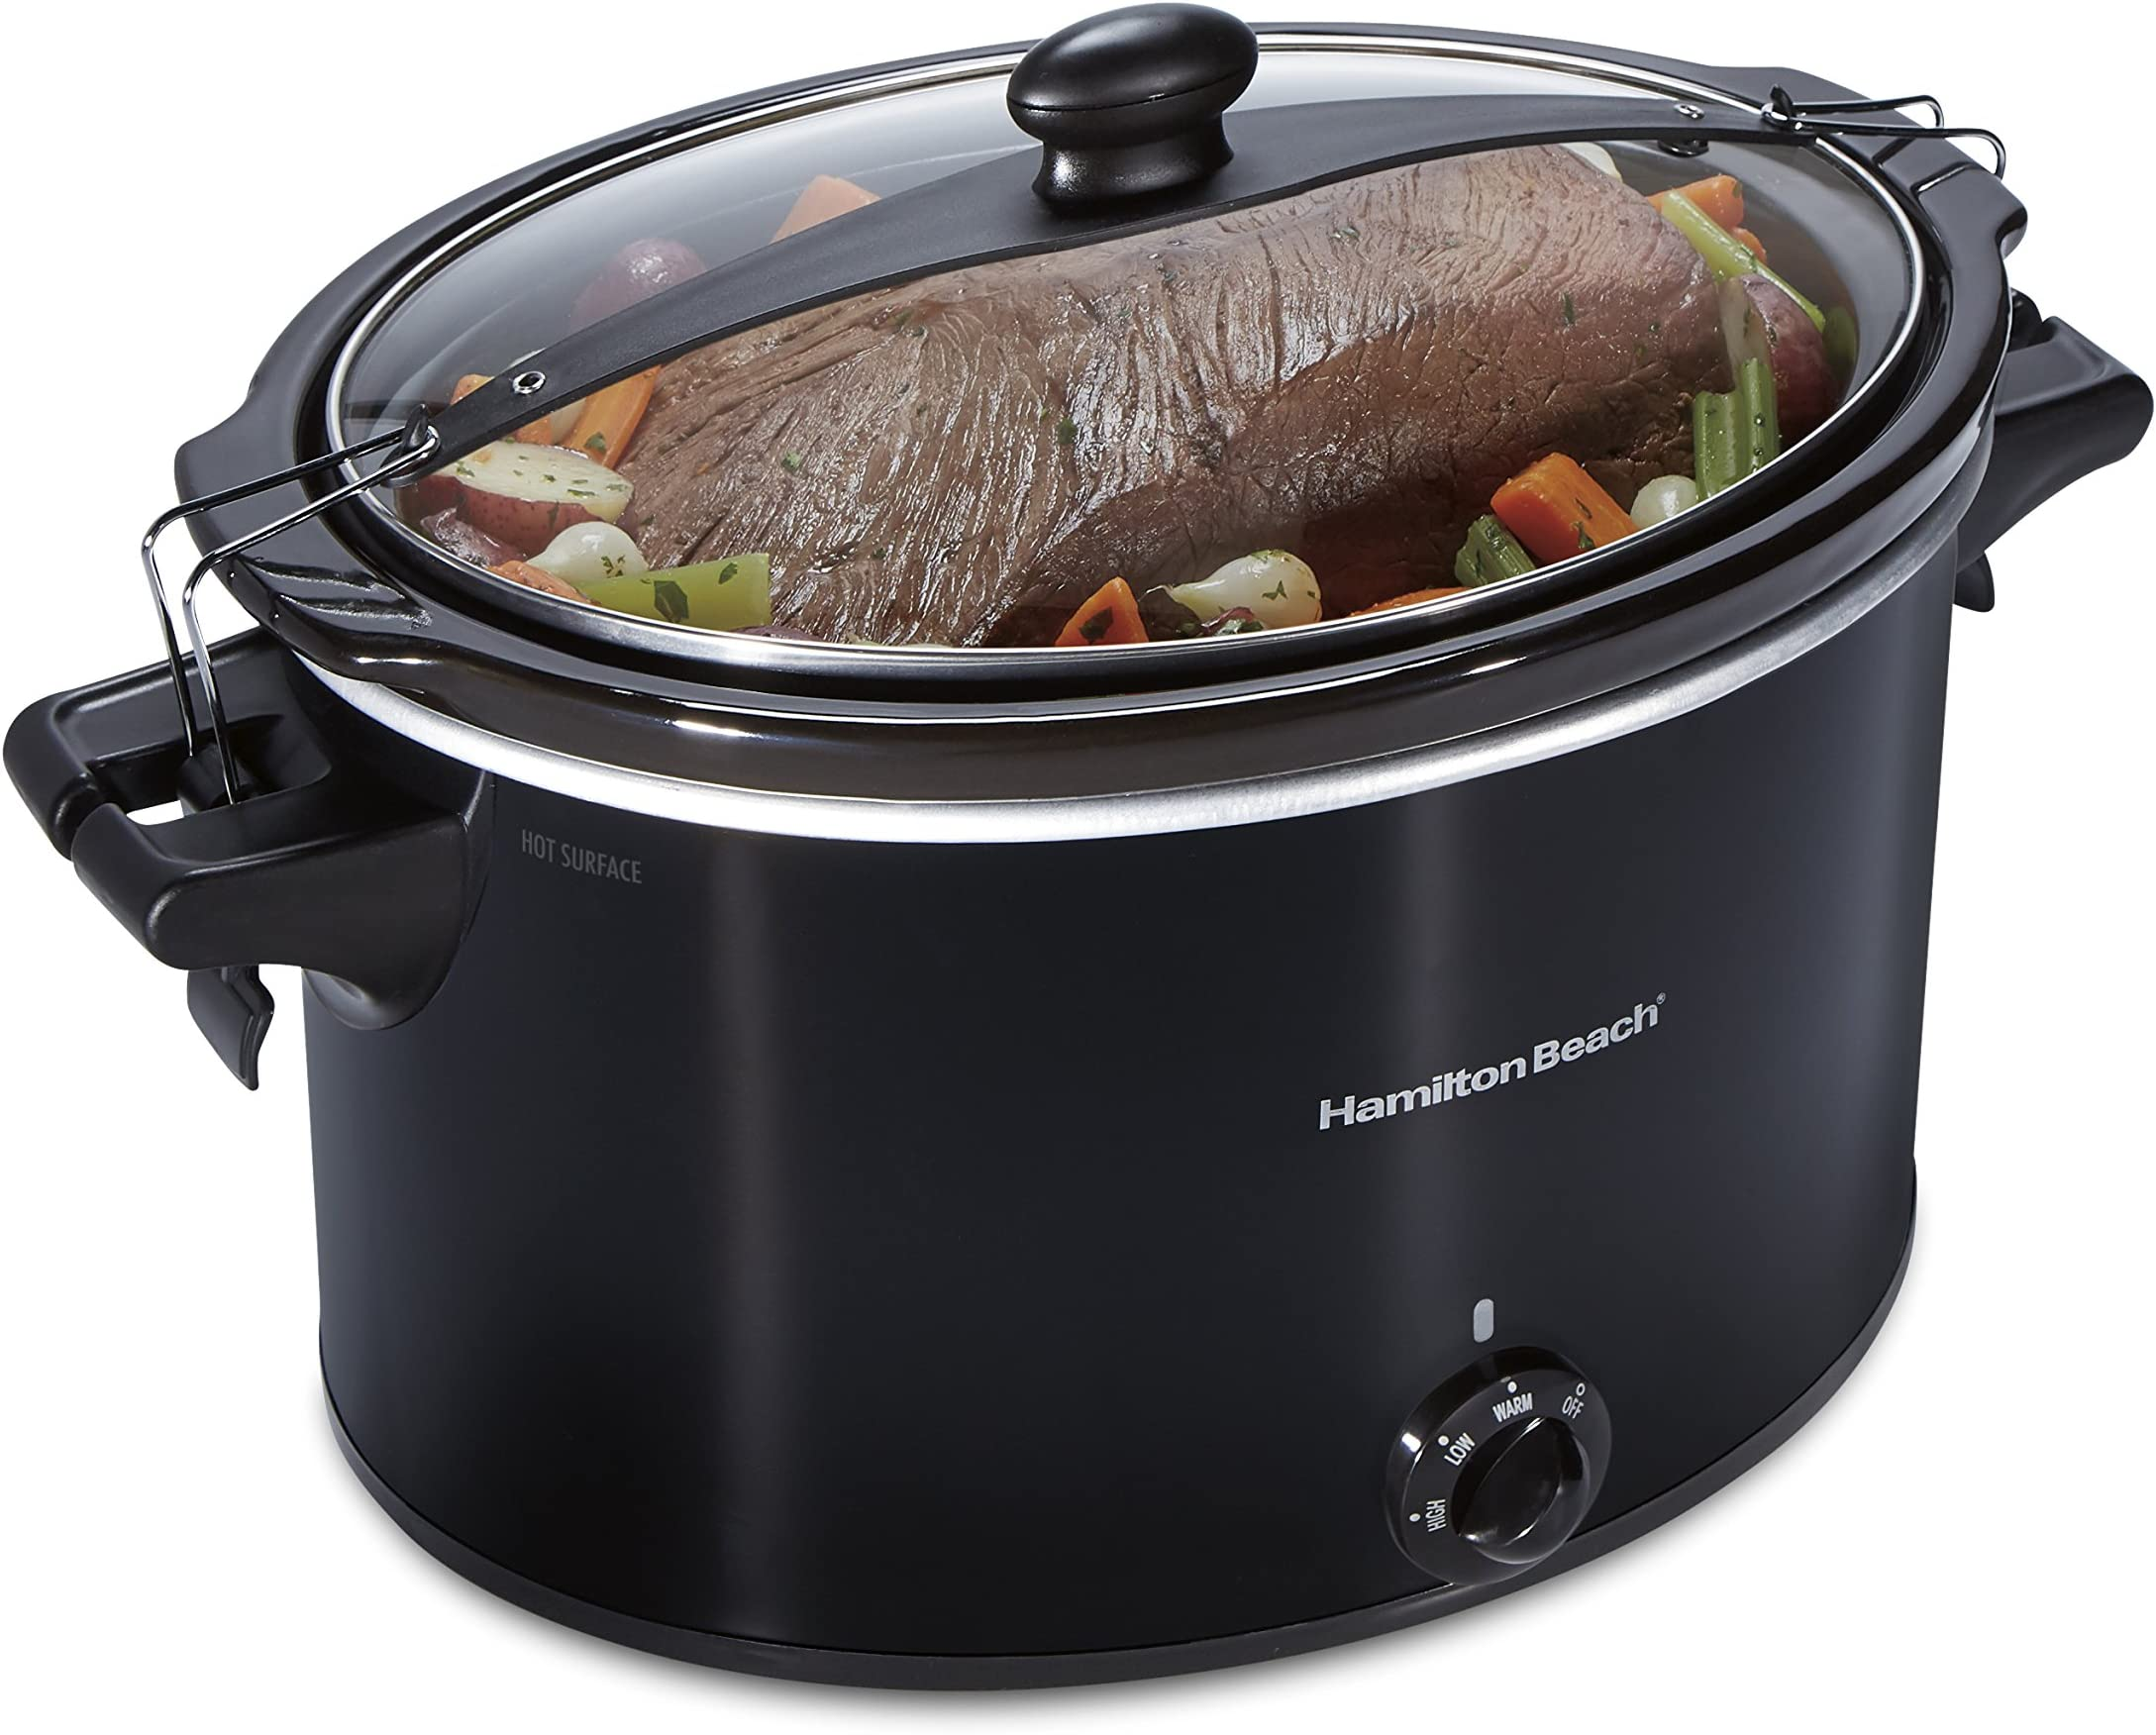 Hamilton Beach Slow Cooker, Extra Large 10 Quart, Stay or Go Portable With Lid Lock, Dishwasher Safe Crock, Black (33195)